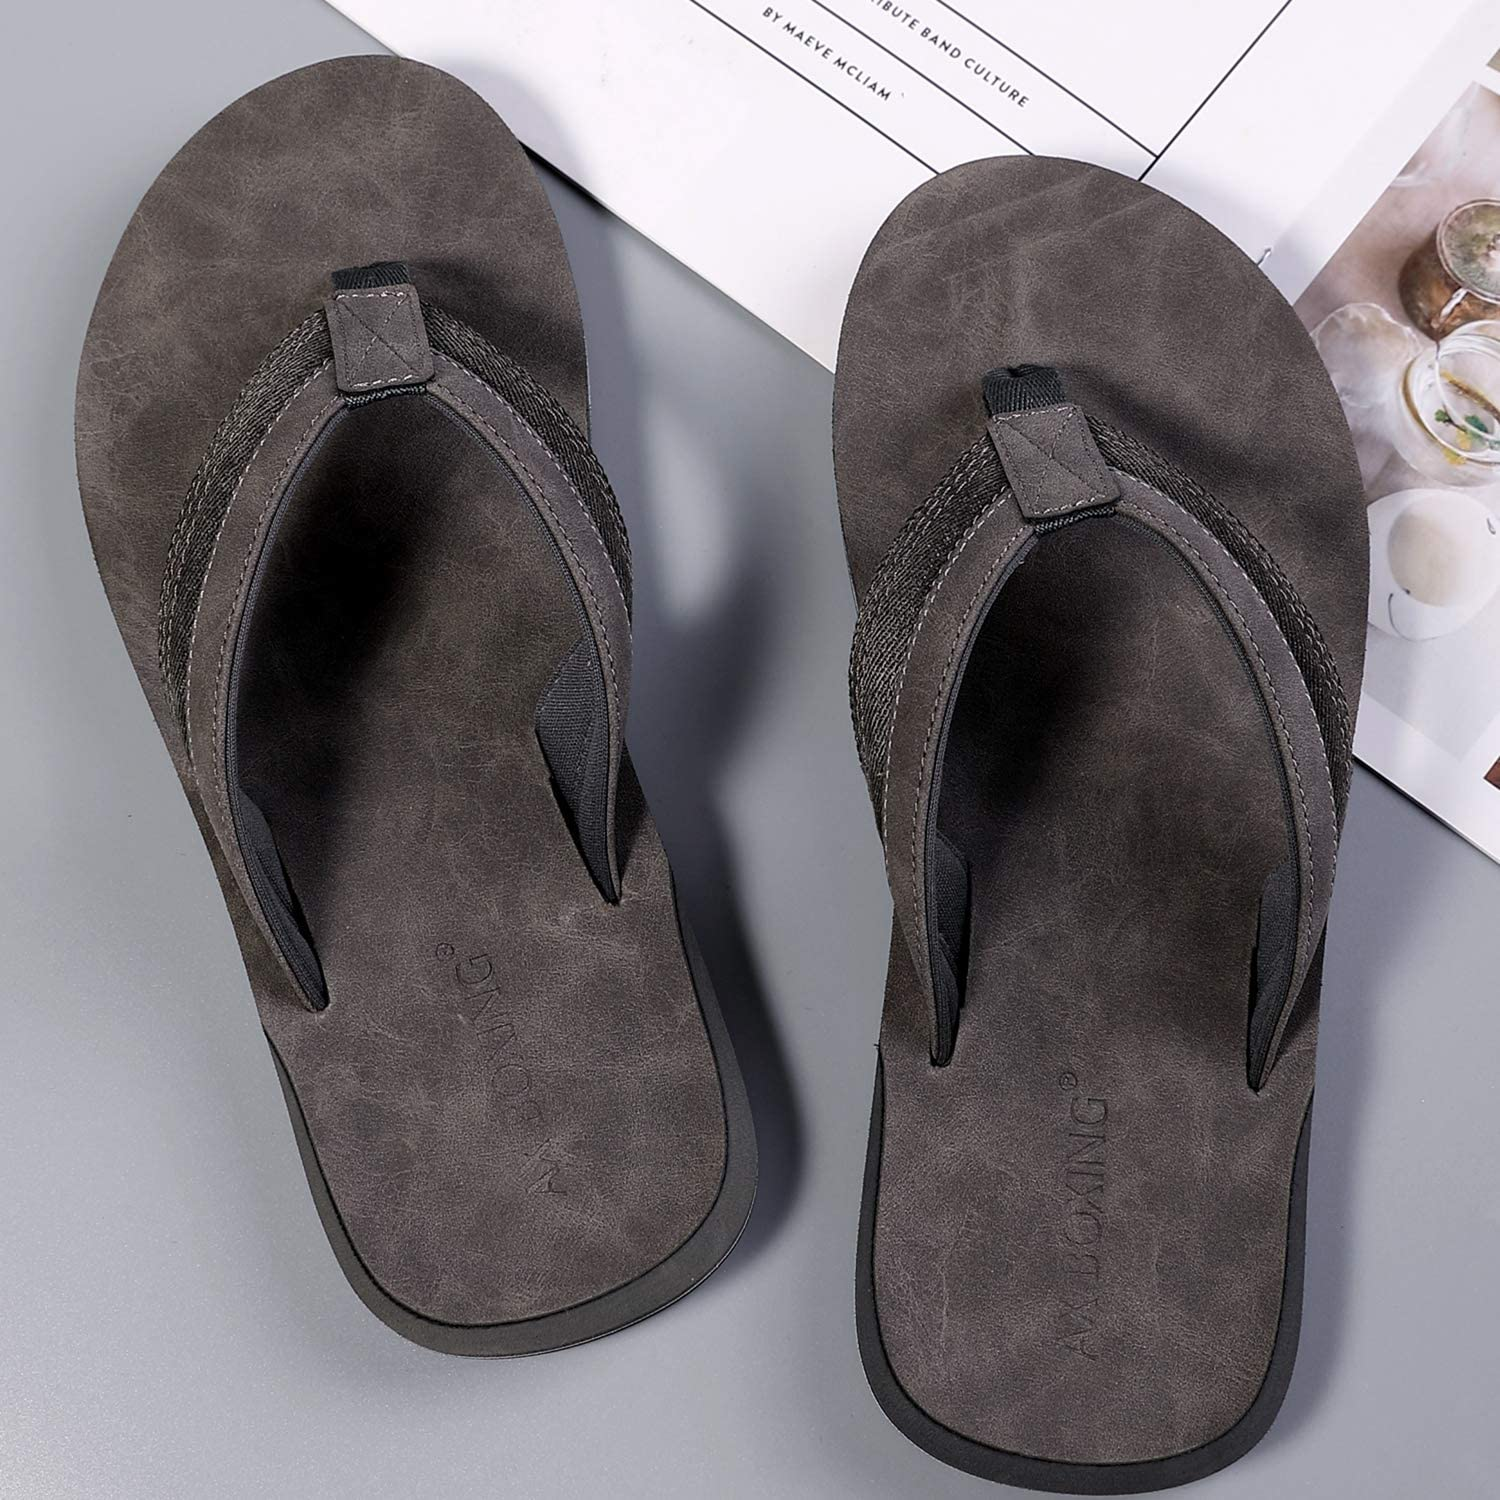 AX BOXING Men's Thong Sandals Flip Flops with Arch Support Outdoor Athletic Slide(Gray, Numeric_11)